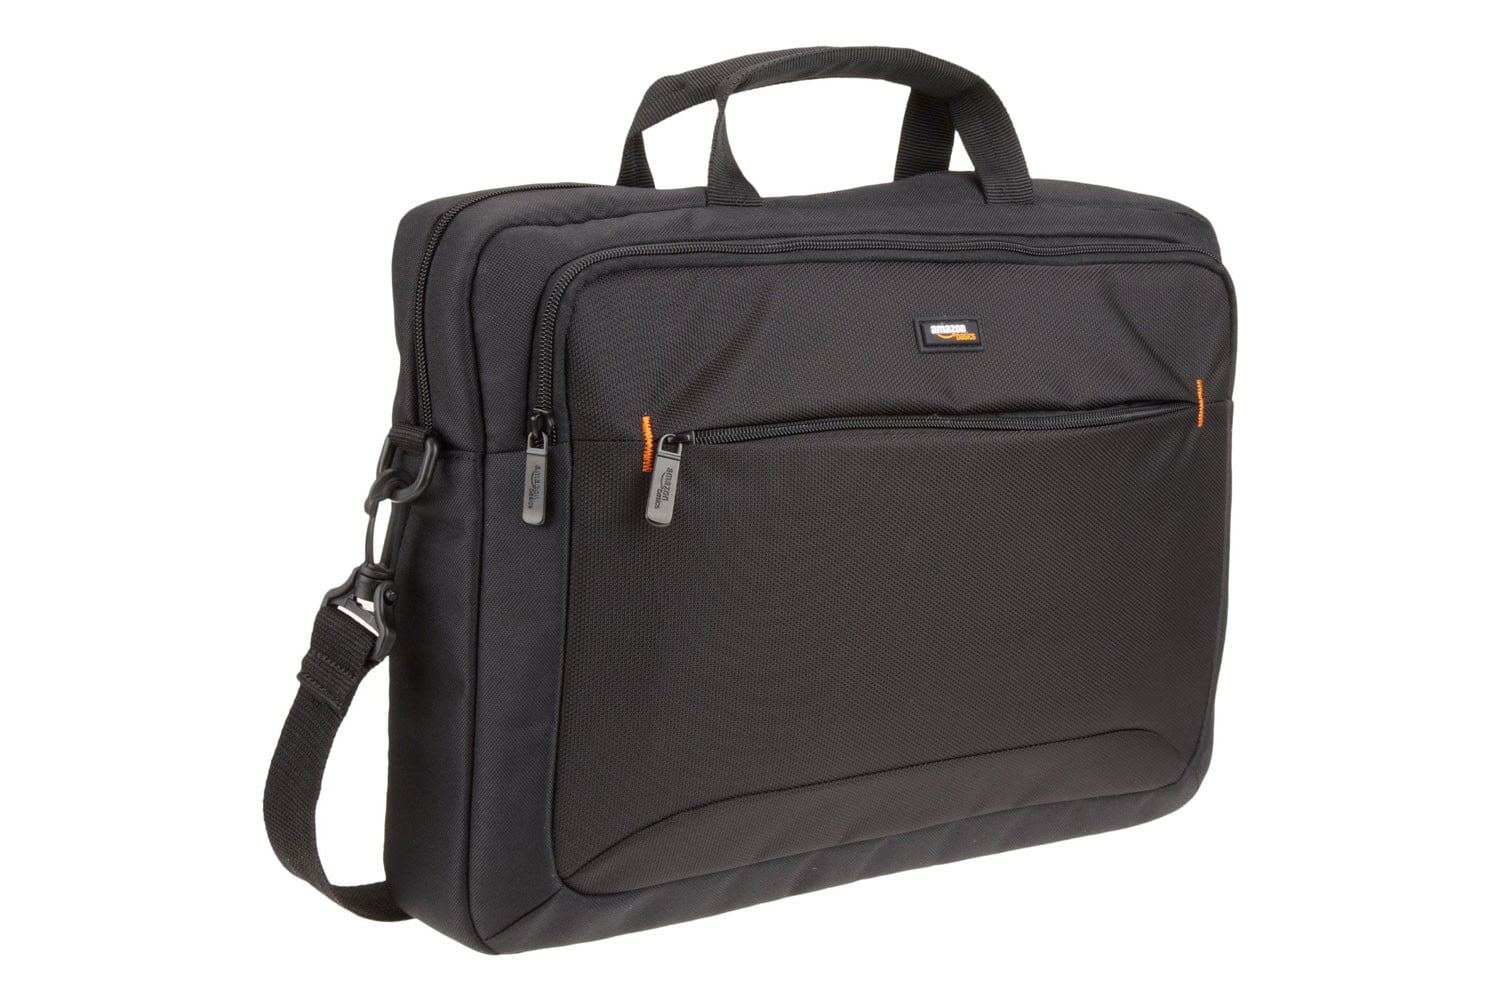 5 Great Laptop Bags for Students | Digital Trends: http://digitaltrends.com/computing/best-laptop-bags-for-students